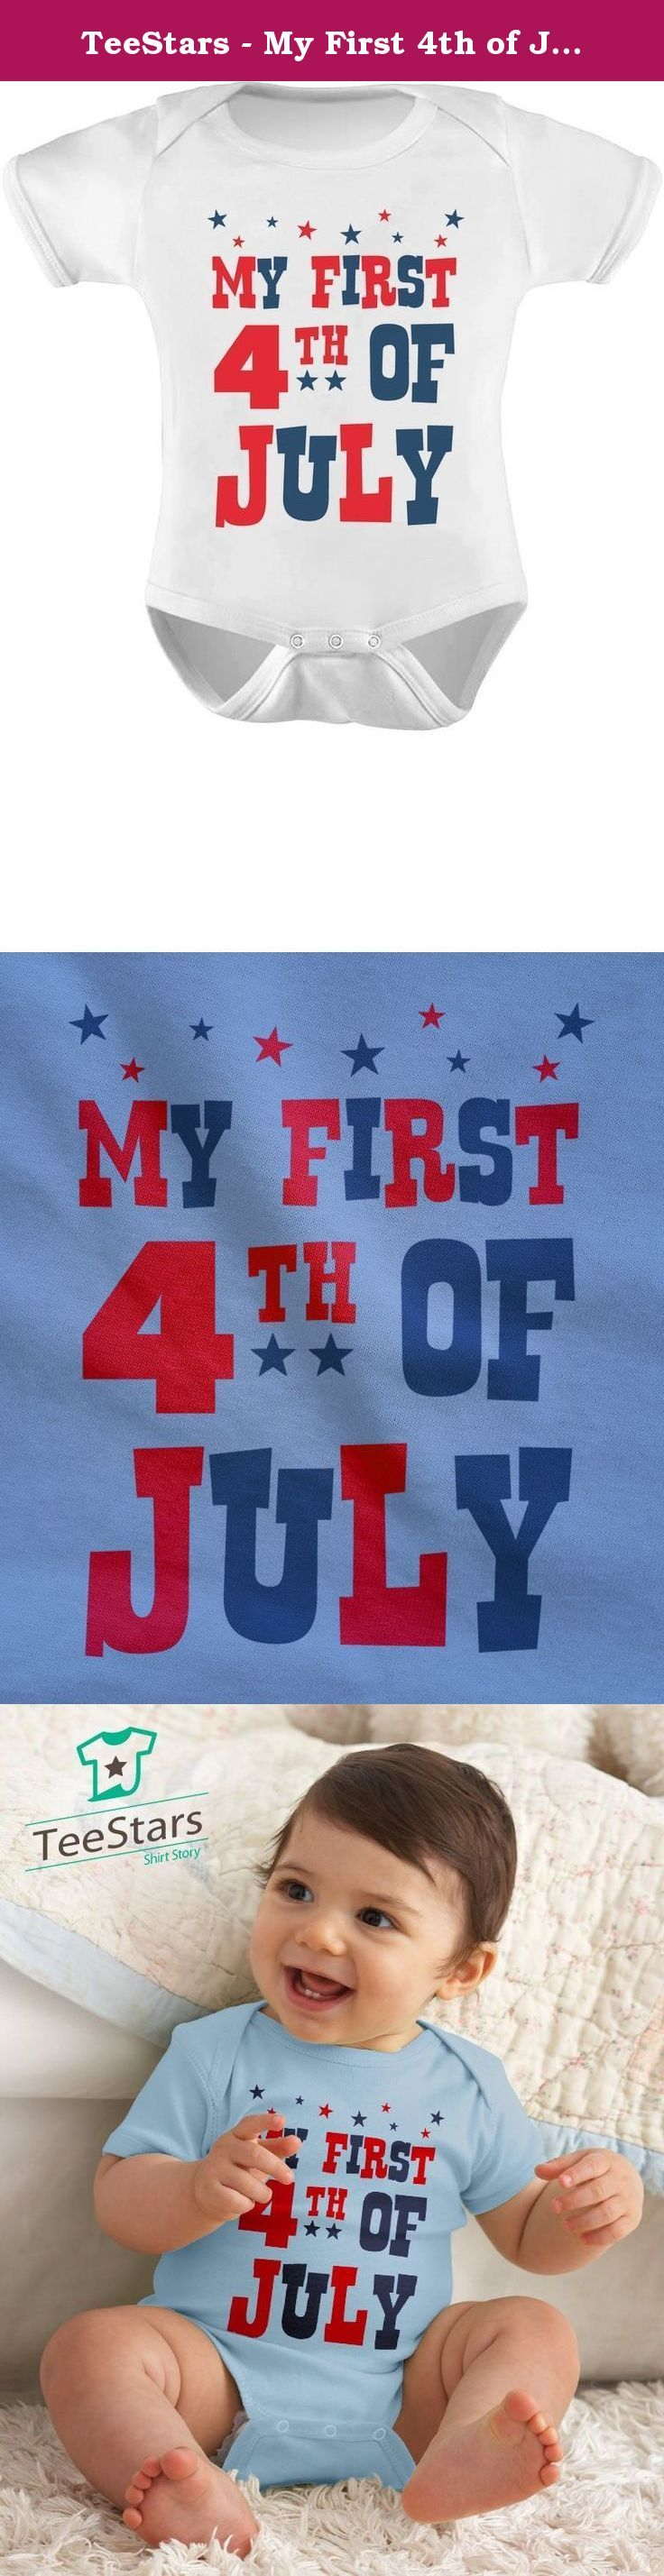 TeeStars - My First 4th of July Bodysuit Independence Day Gift USA Baby Onesie 6M White. Best gift for the first 4th of July for your baby boy or baby girl. Cute little onesie to wear for U.S Independence Day celebrations. Premium quality, short sleeve baby onesie. 100% combed-cotton (preshrunk,) machine washable, cozy one-piece for your baby! overlapping expandable shoulders and three-snap closure at the bottom to make changing as smooth and easy as possible. Available in a wide variety…